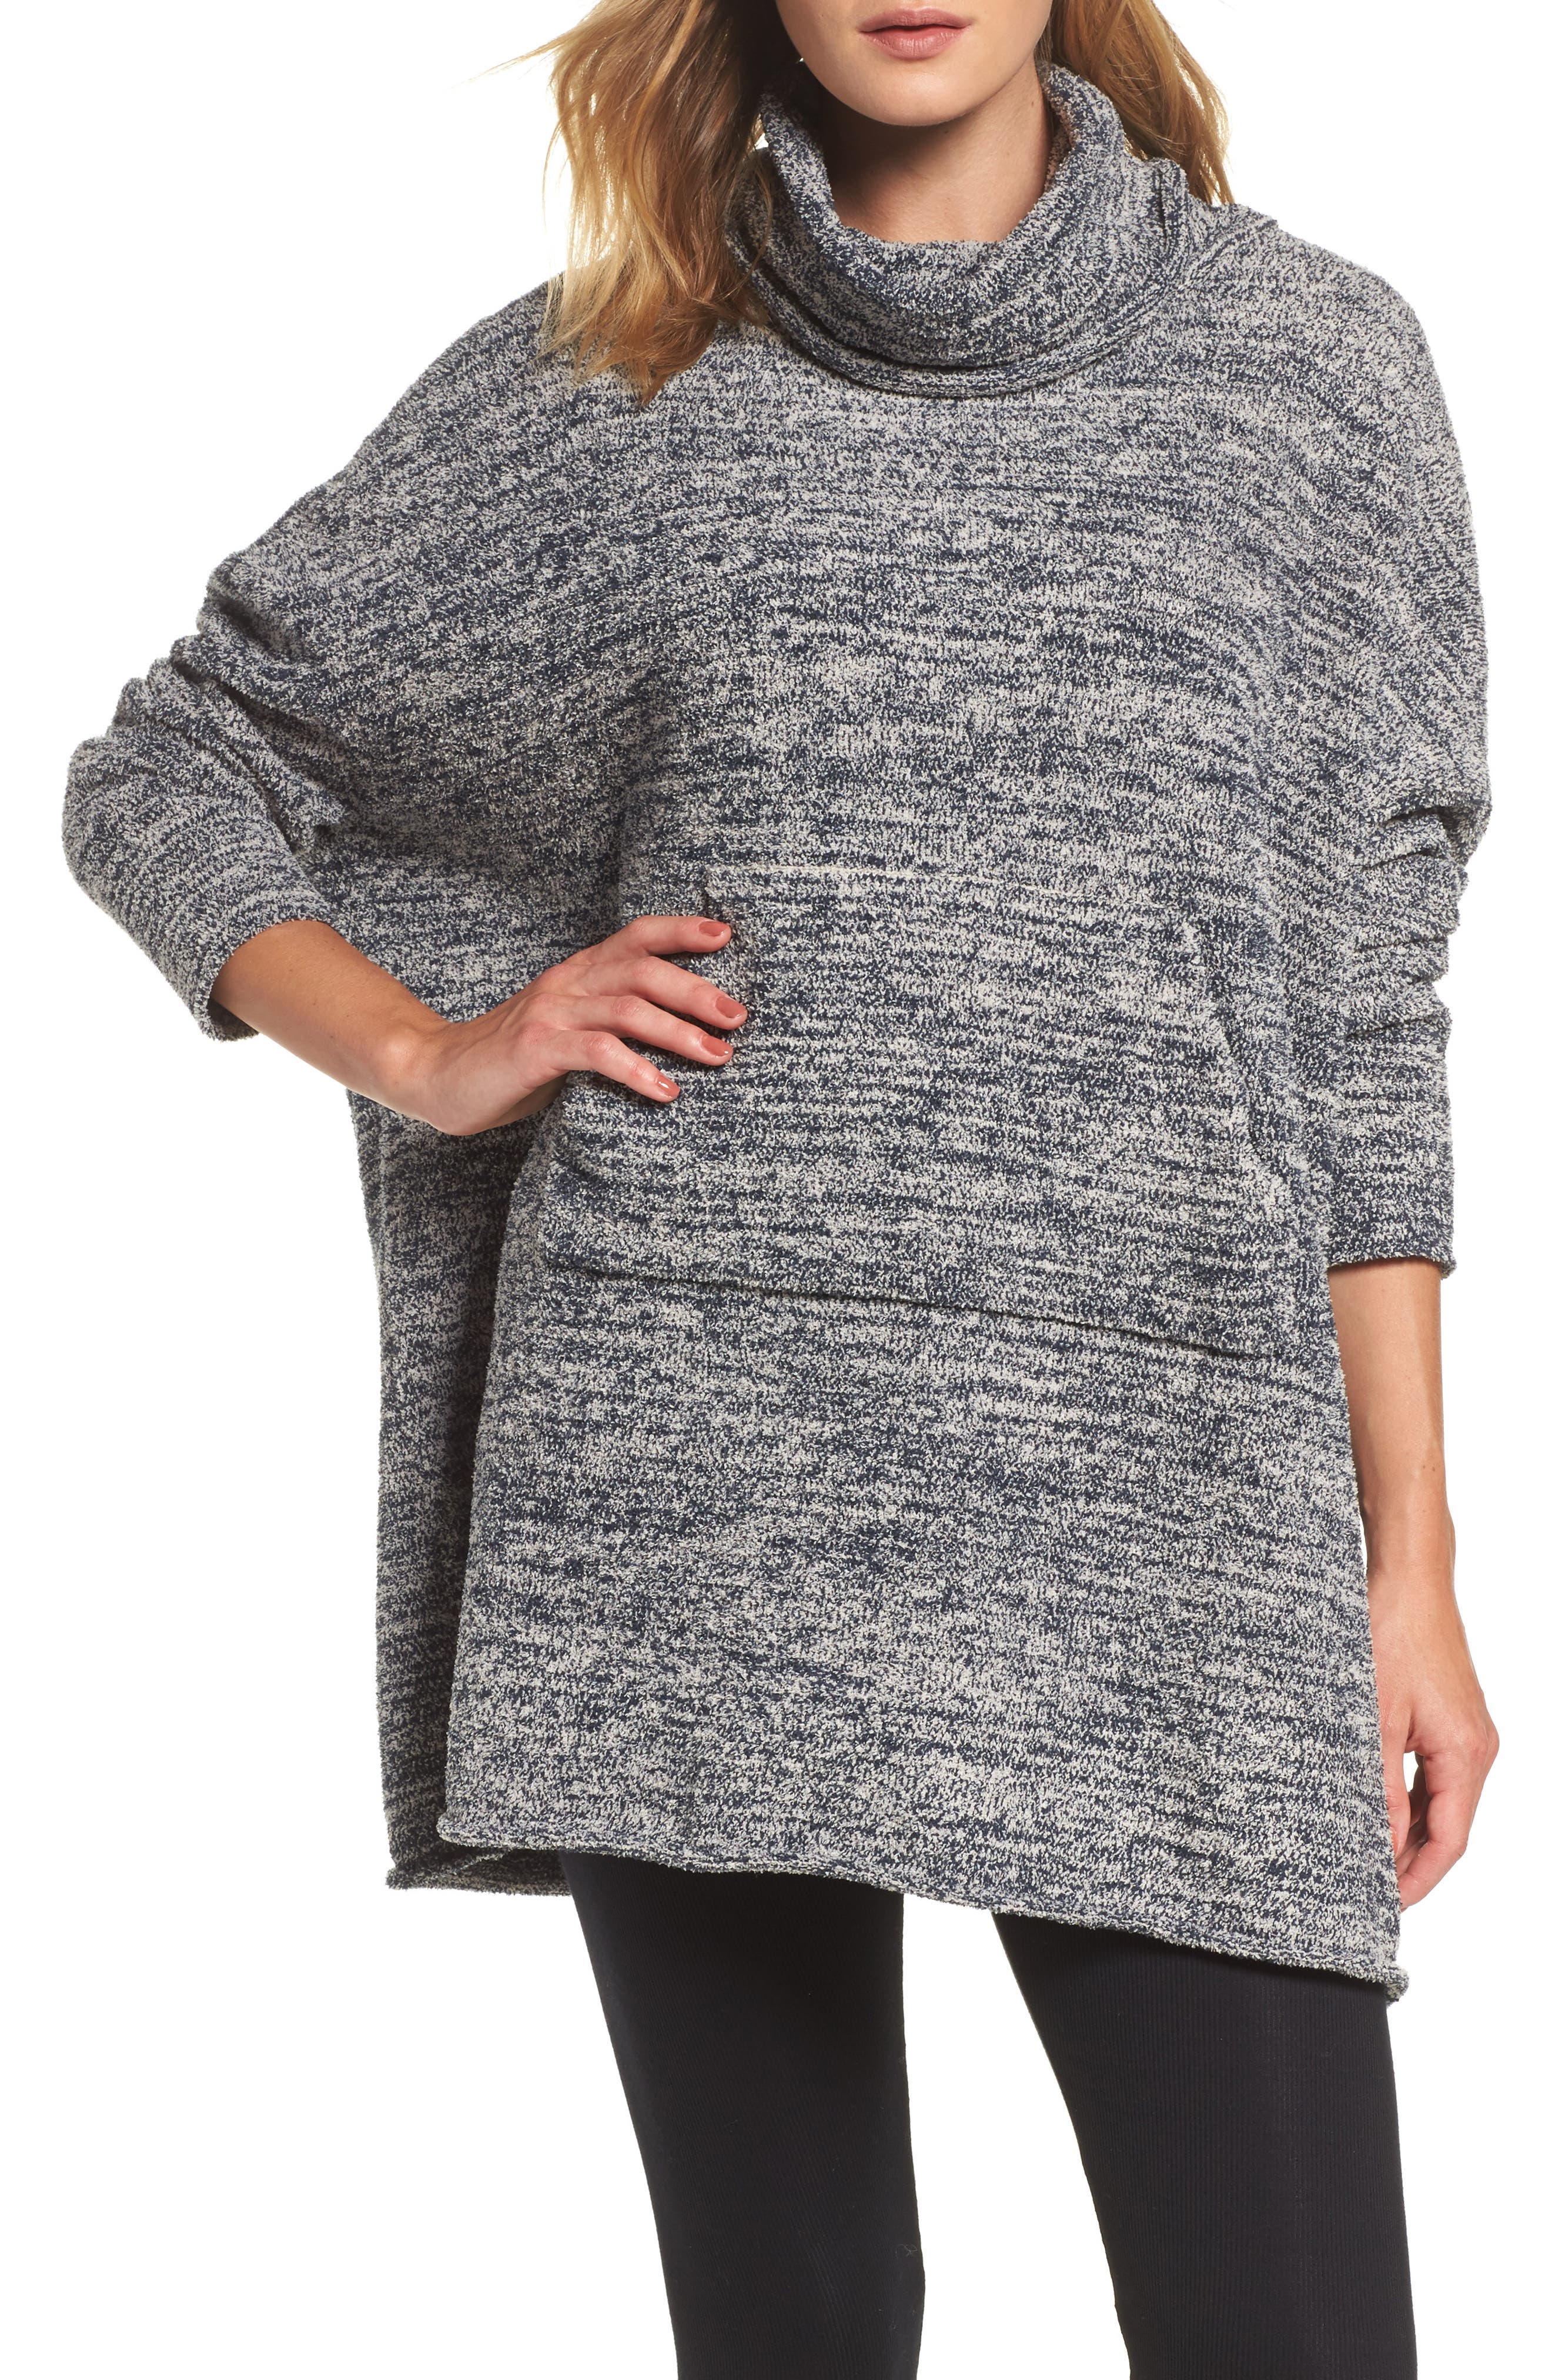 Cozychic<sup>®</sup> Lounge Pullover,                         Main,                         color, Indigo/ Stone Heathered